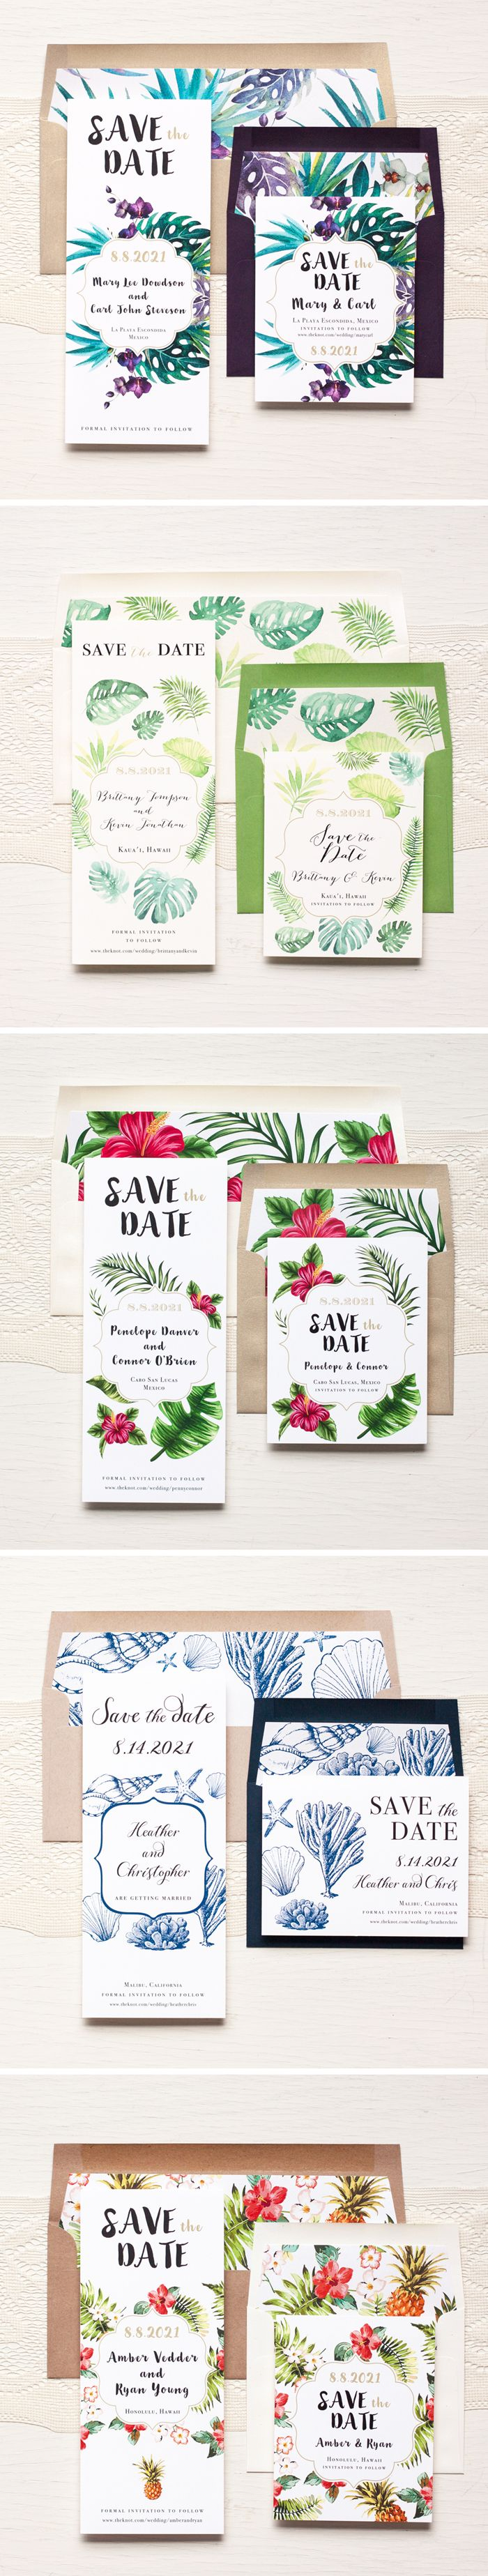 64 Best Unique Save The Date Ideas Images On Pinterest 1930s Style